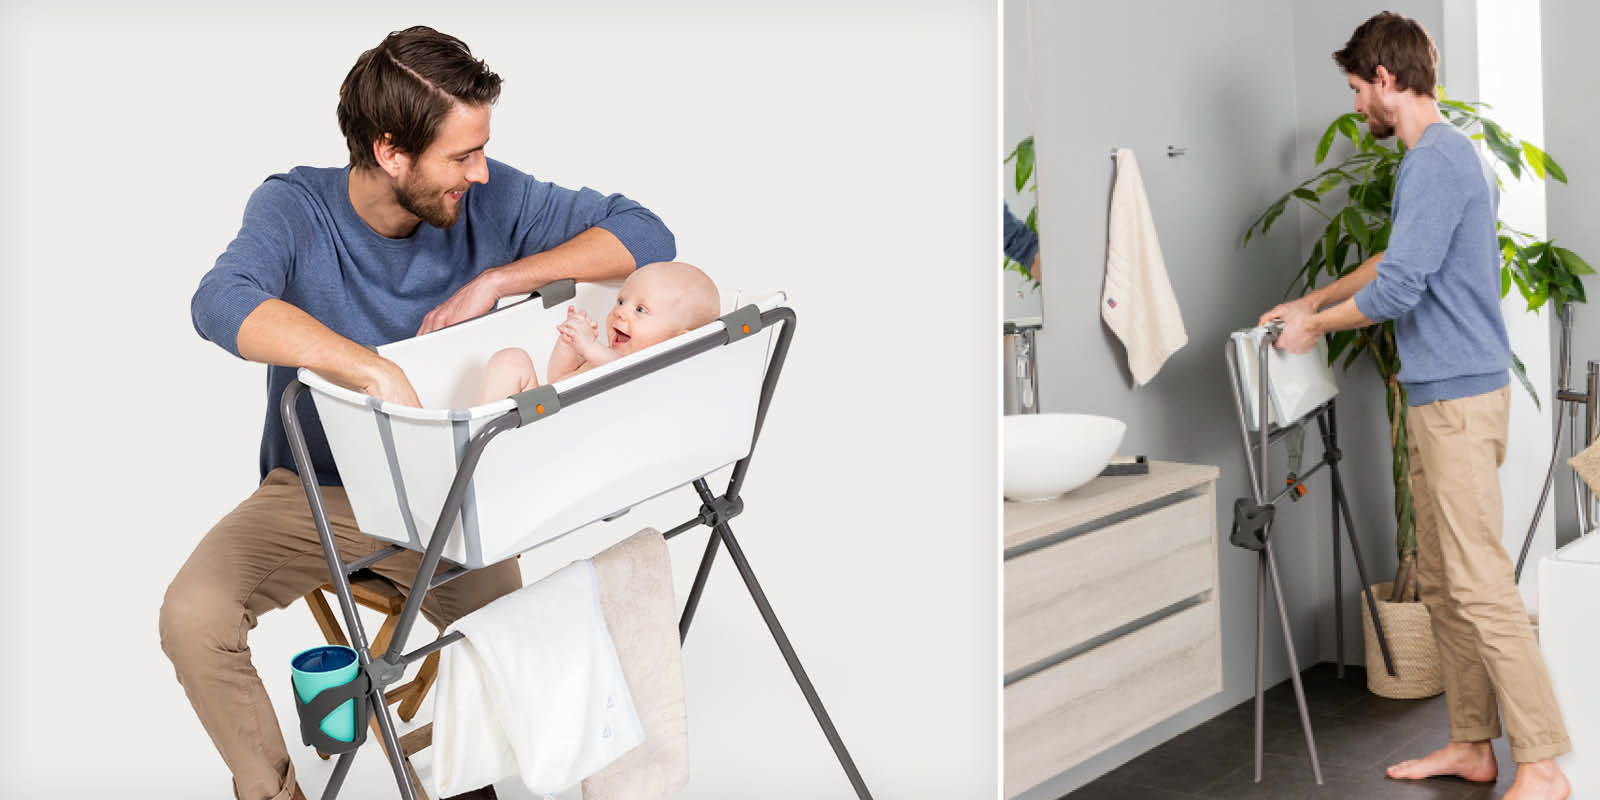 Stokke® Flexi Bath®  WhiteGrey with Newborn Support, on Stokke™ Flexi Bath™ Stand. Stokke® Flexi Bath® WhiteGrey on Stokke™ Flexi Bath™ Stand folded.